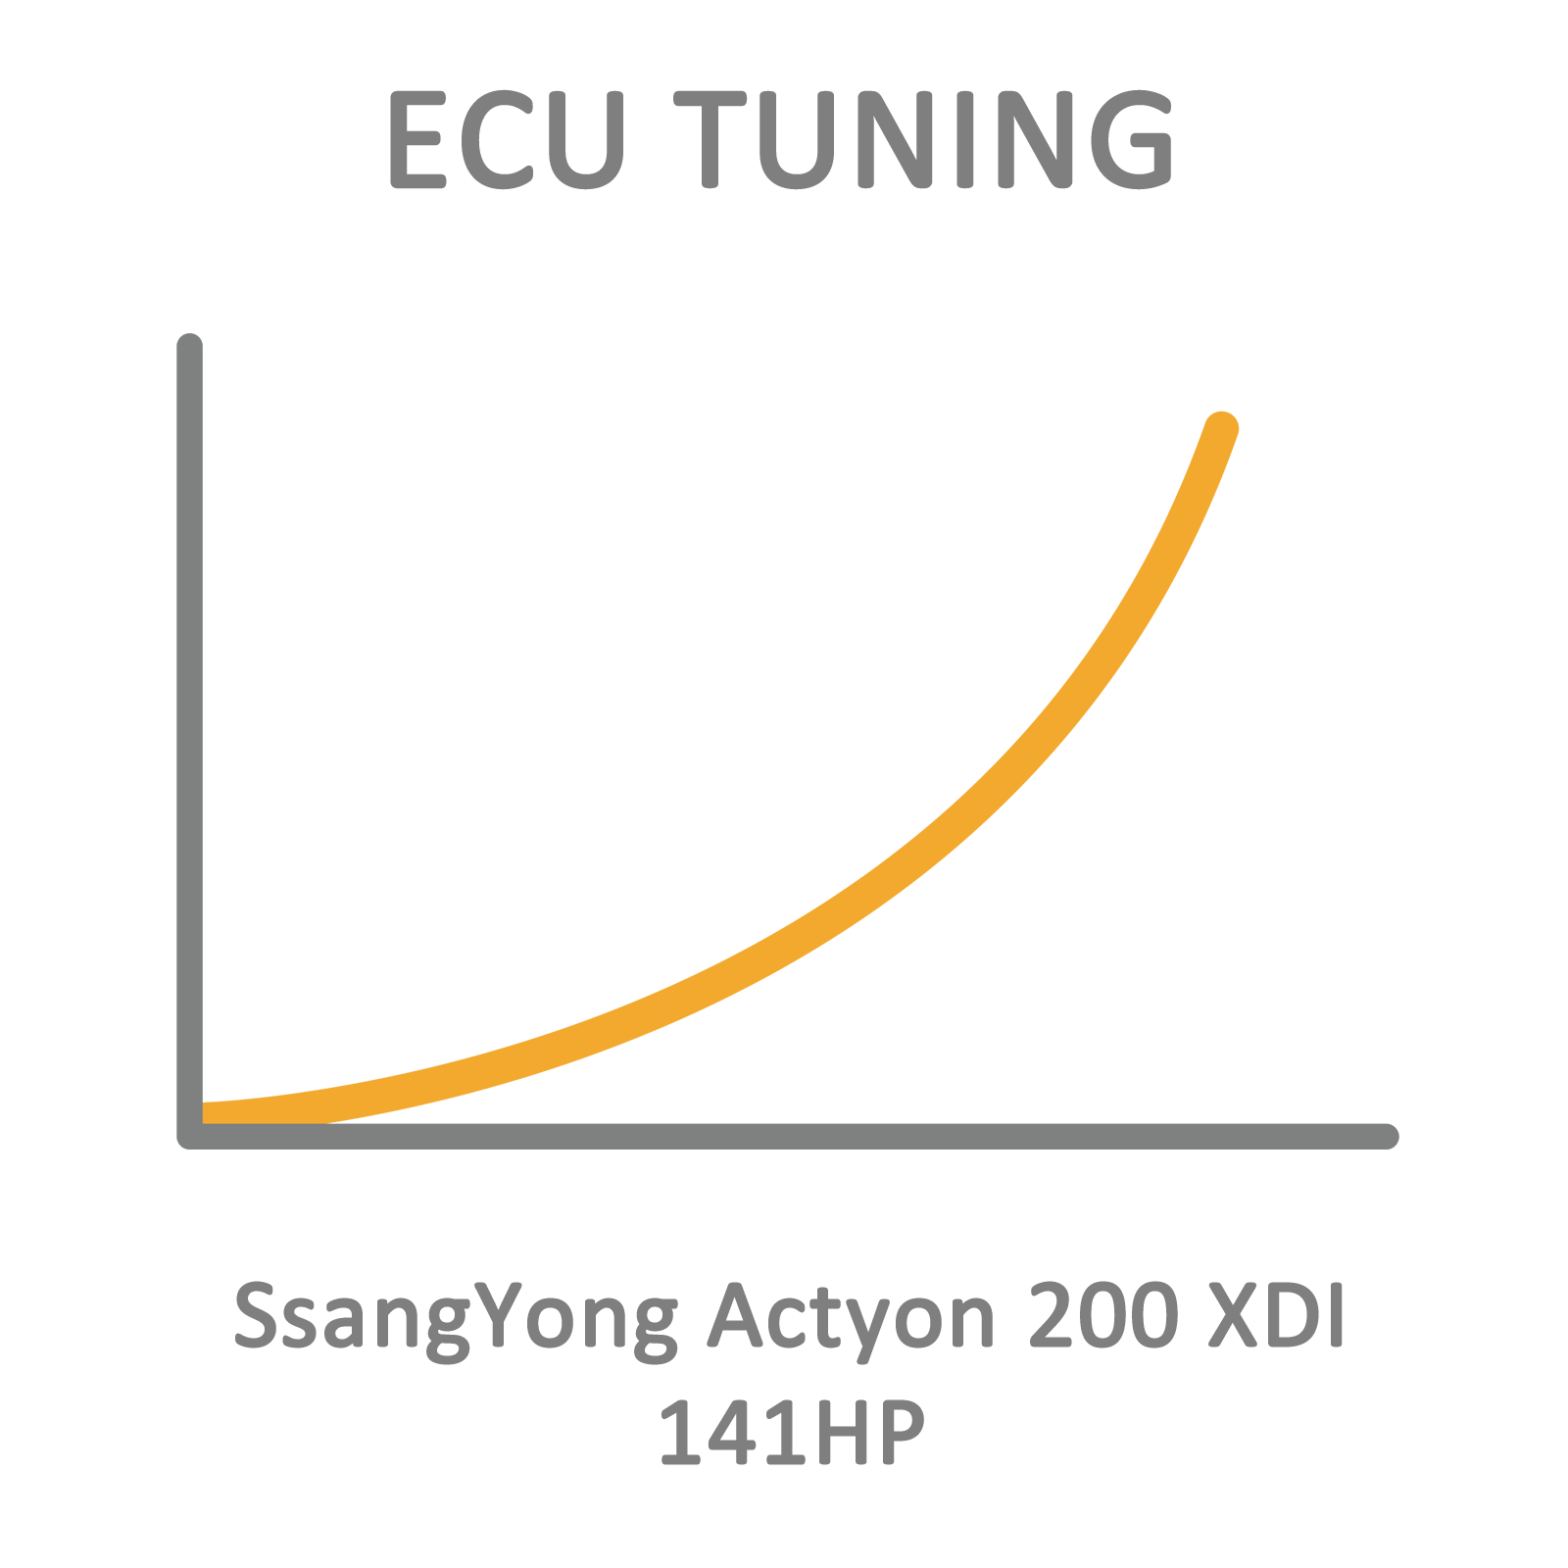 SsangYong Actyon 200 XDI 141HP ECU Tuning Remapping